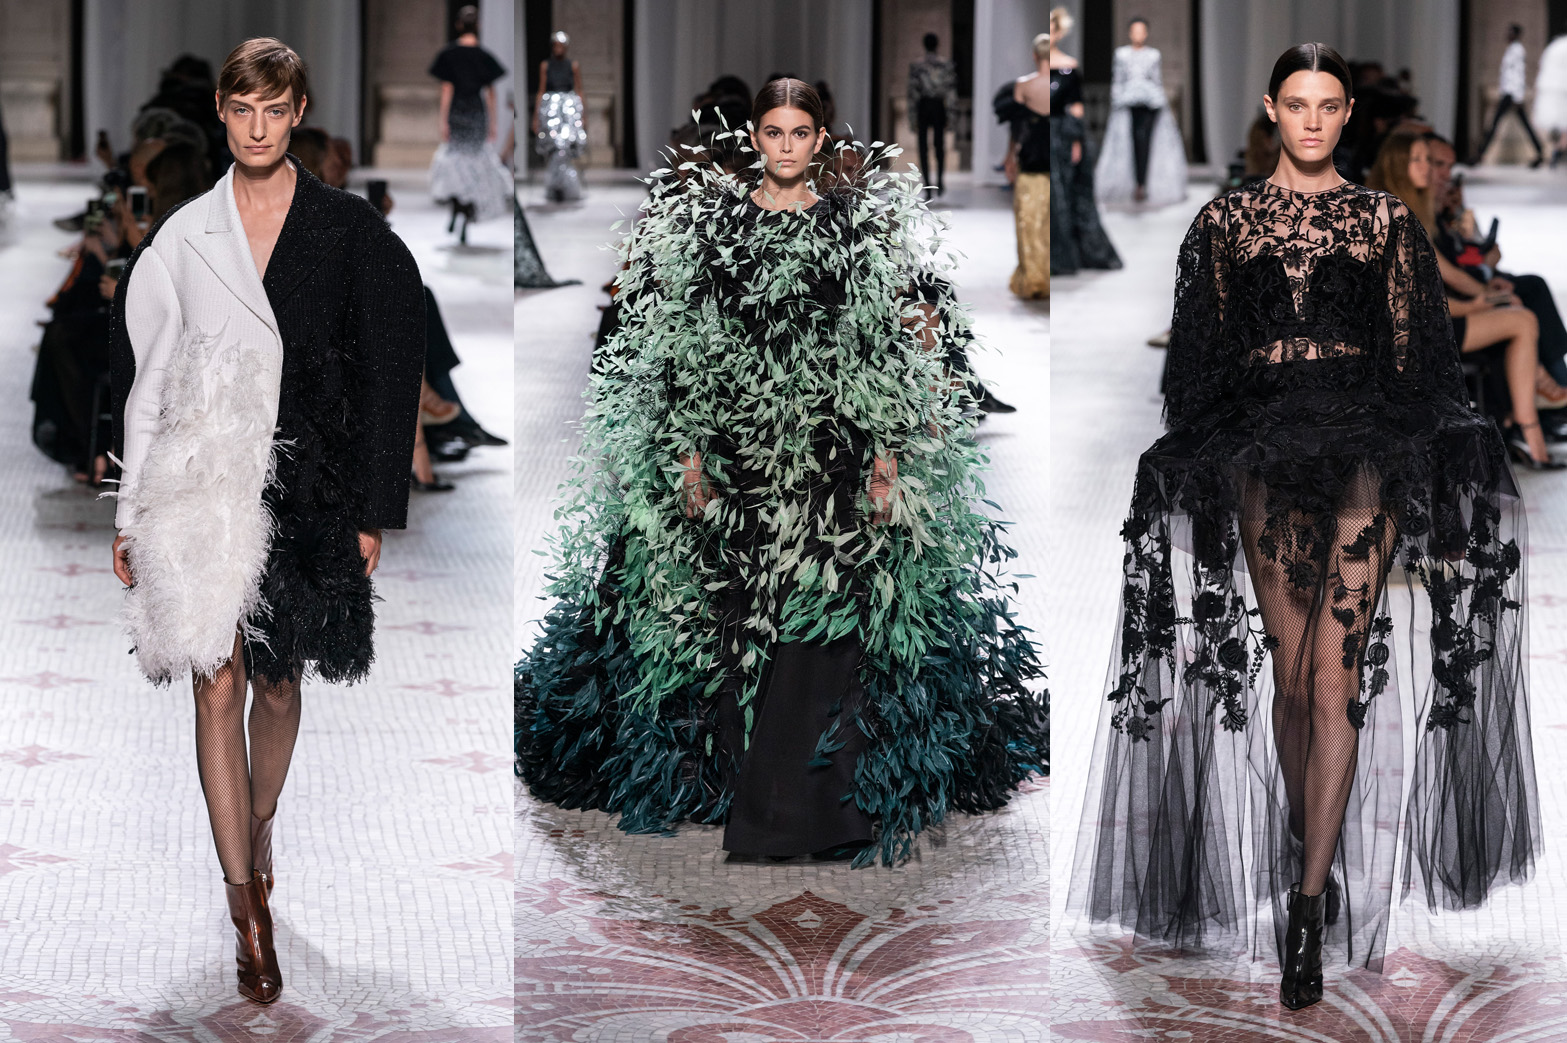 Givenchy's FW19 Haute Couture collection